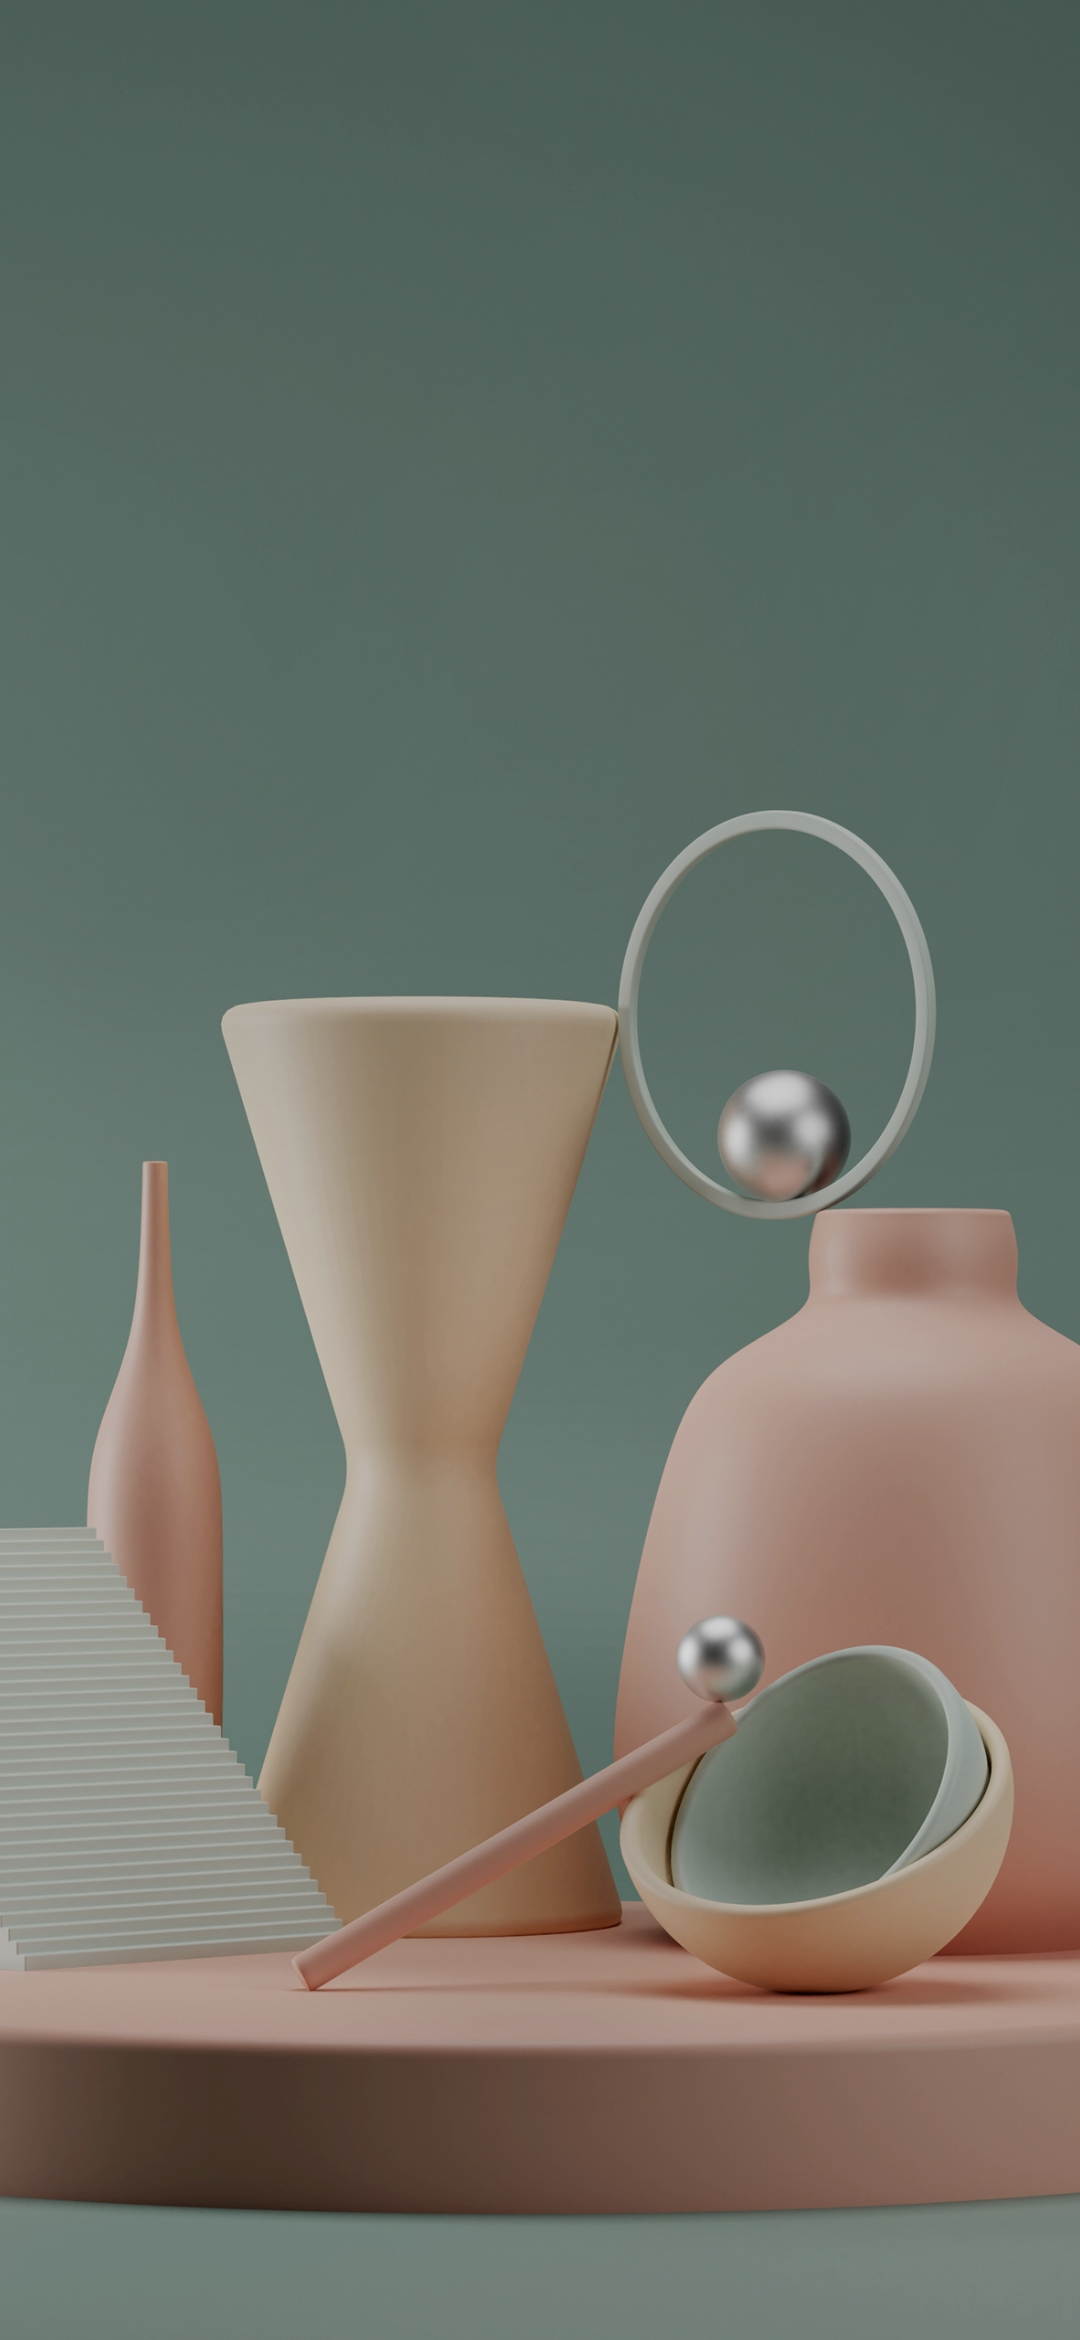 Vessels and bowls